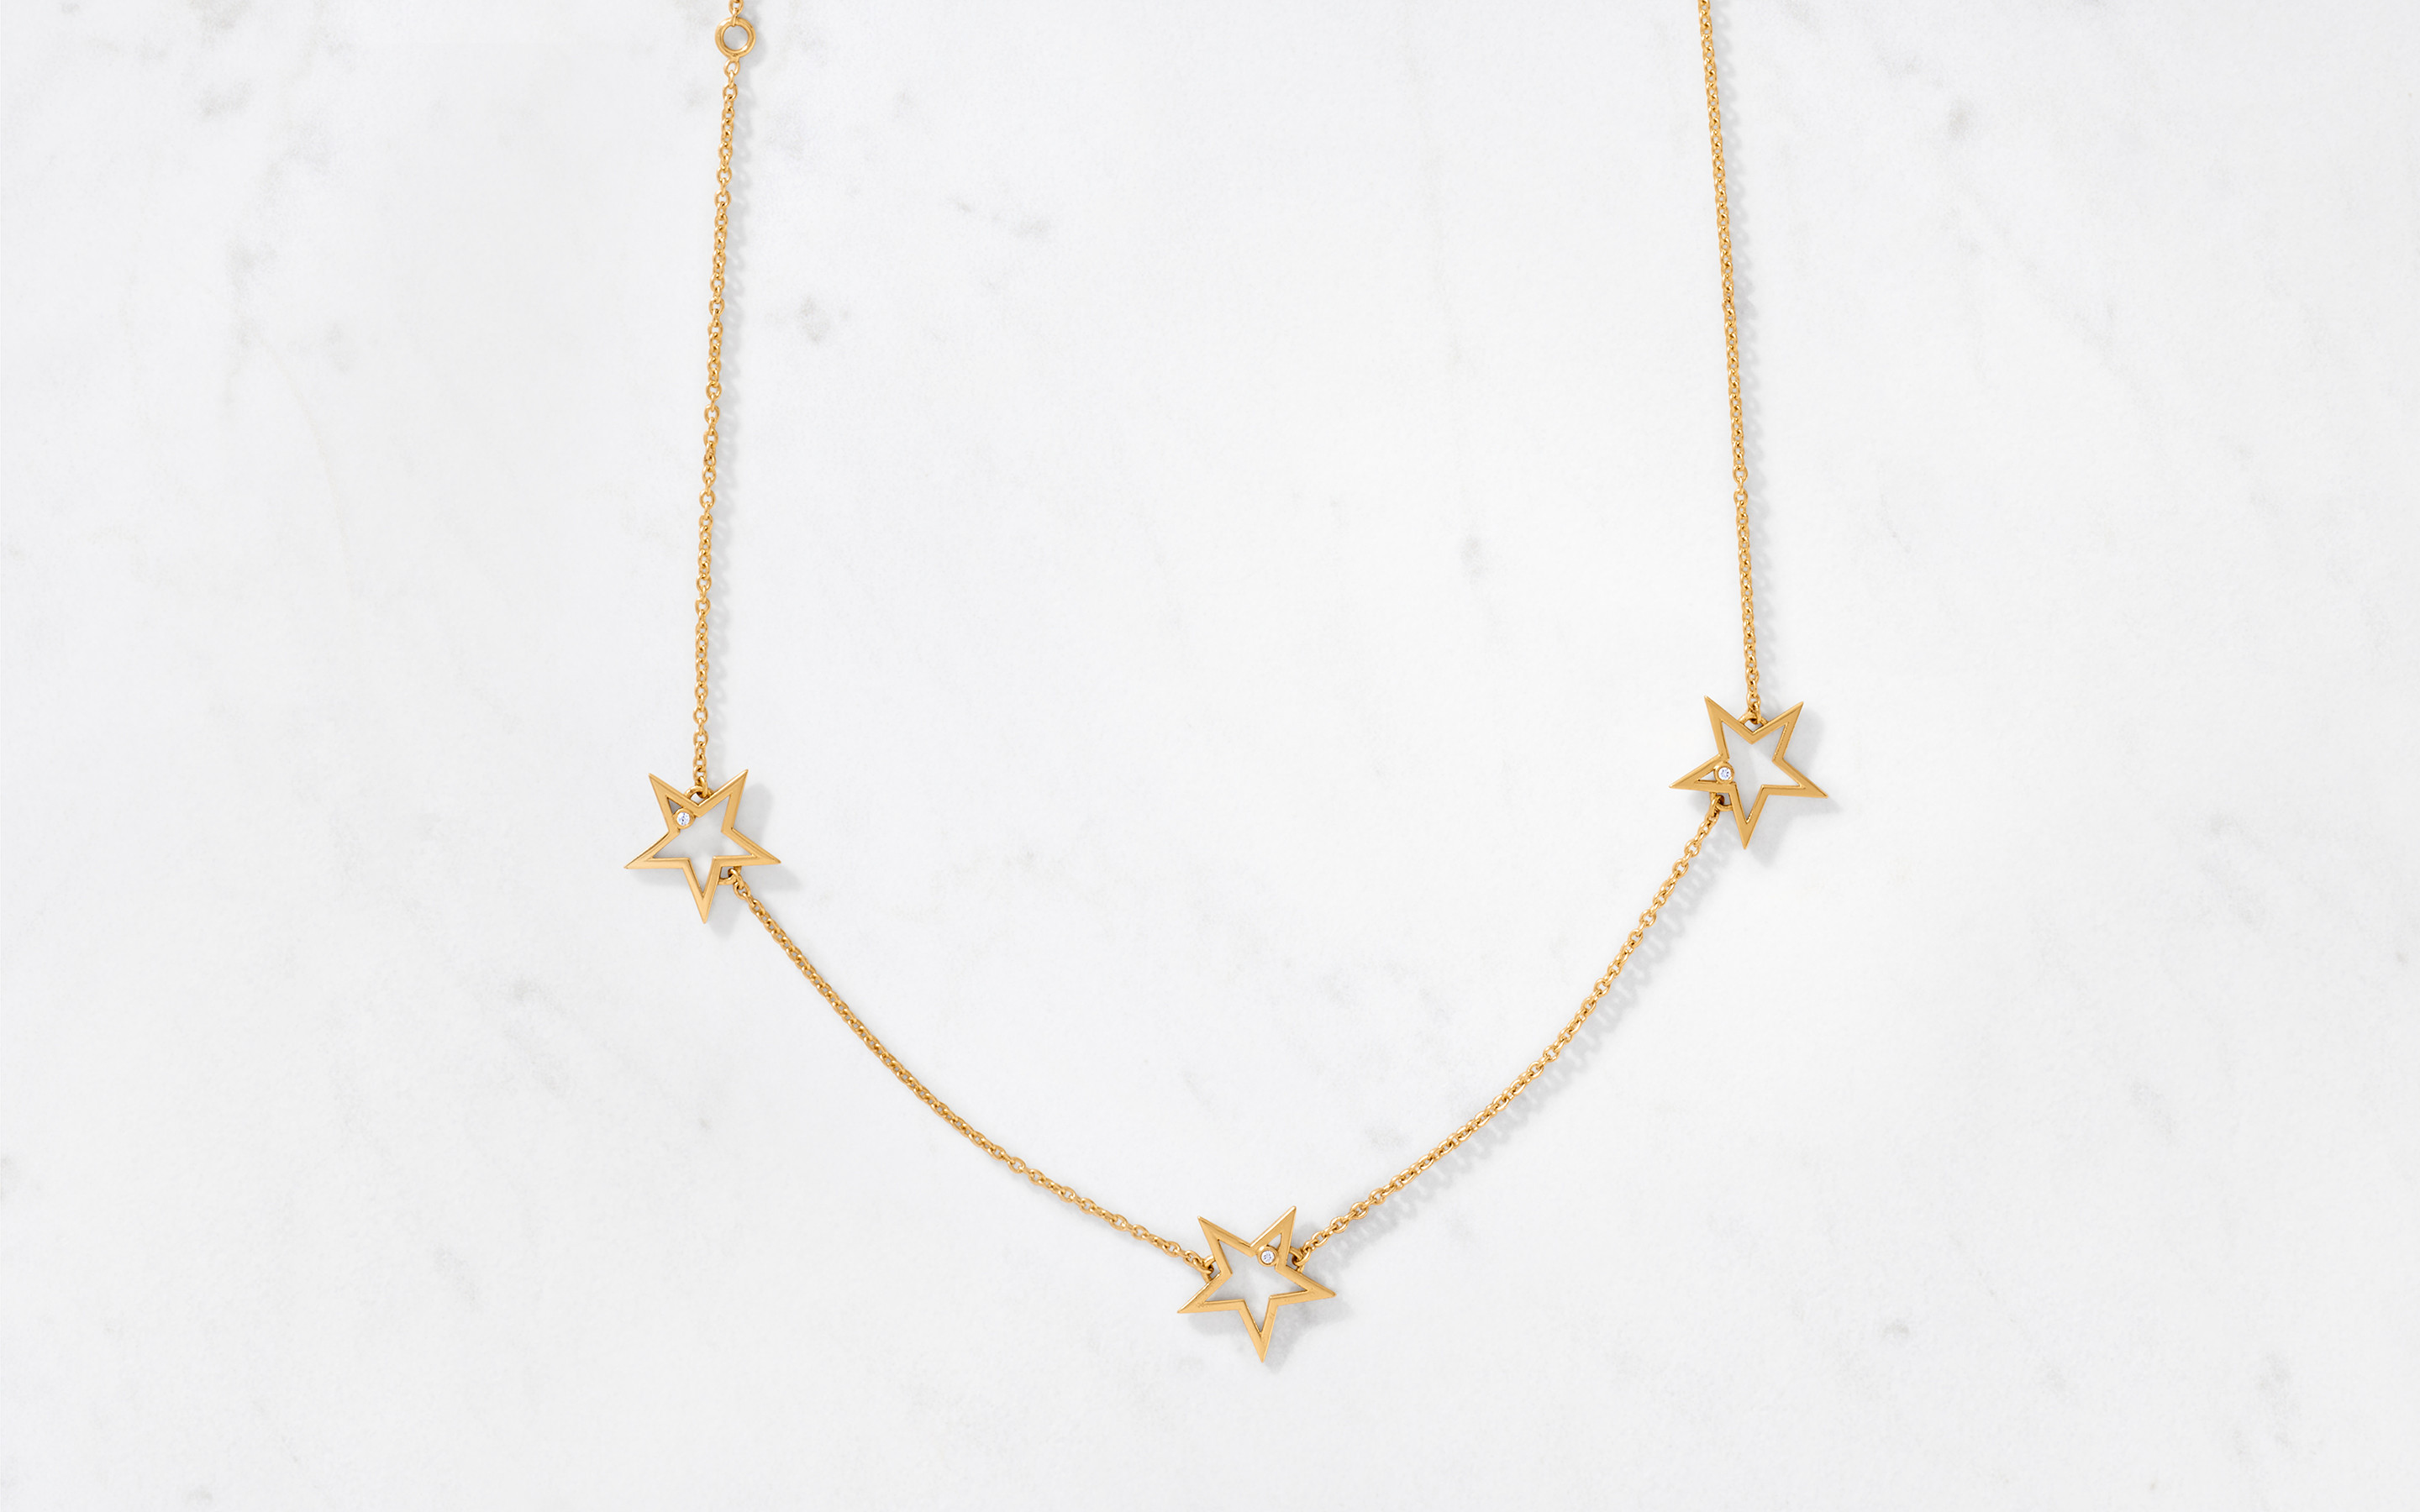 Delicate gold chain laying showing its stock of three  gold stars made of 22 karat gold